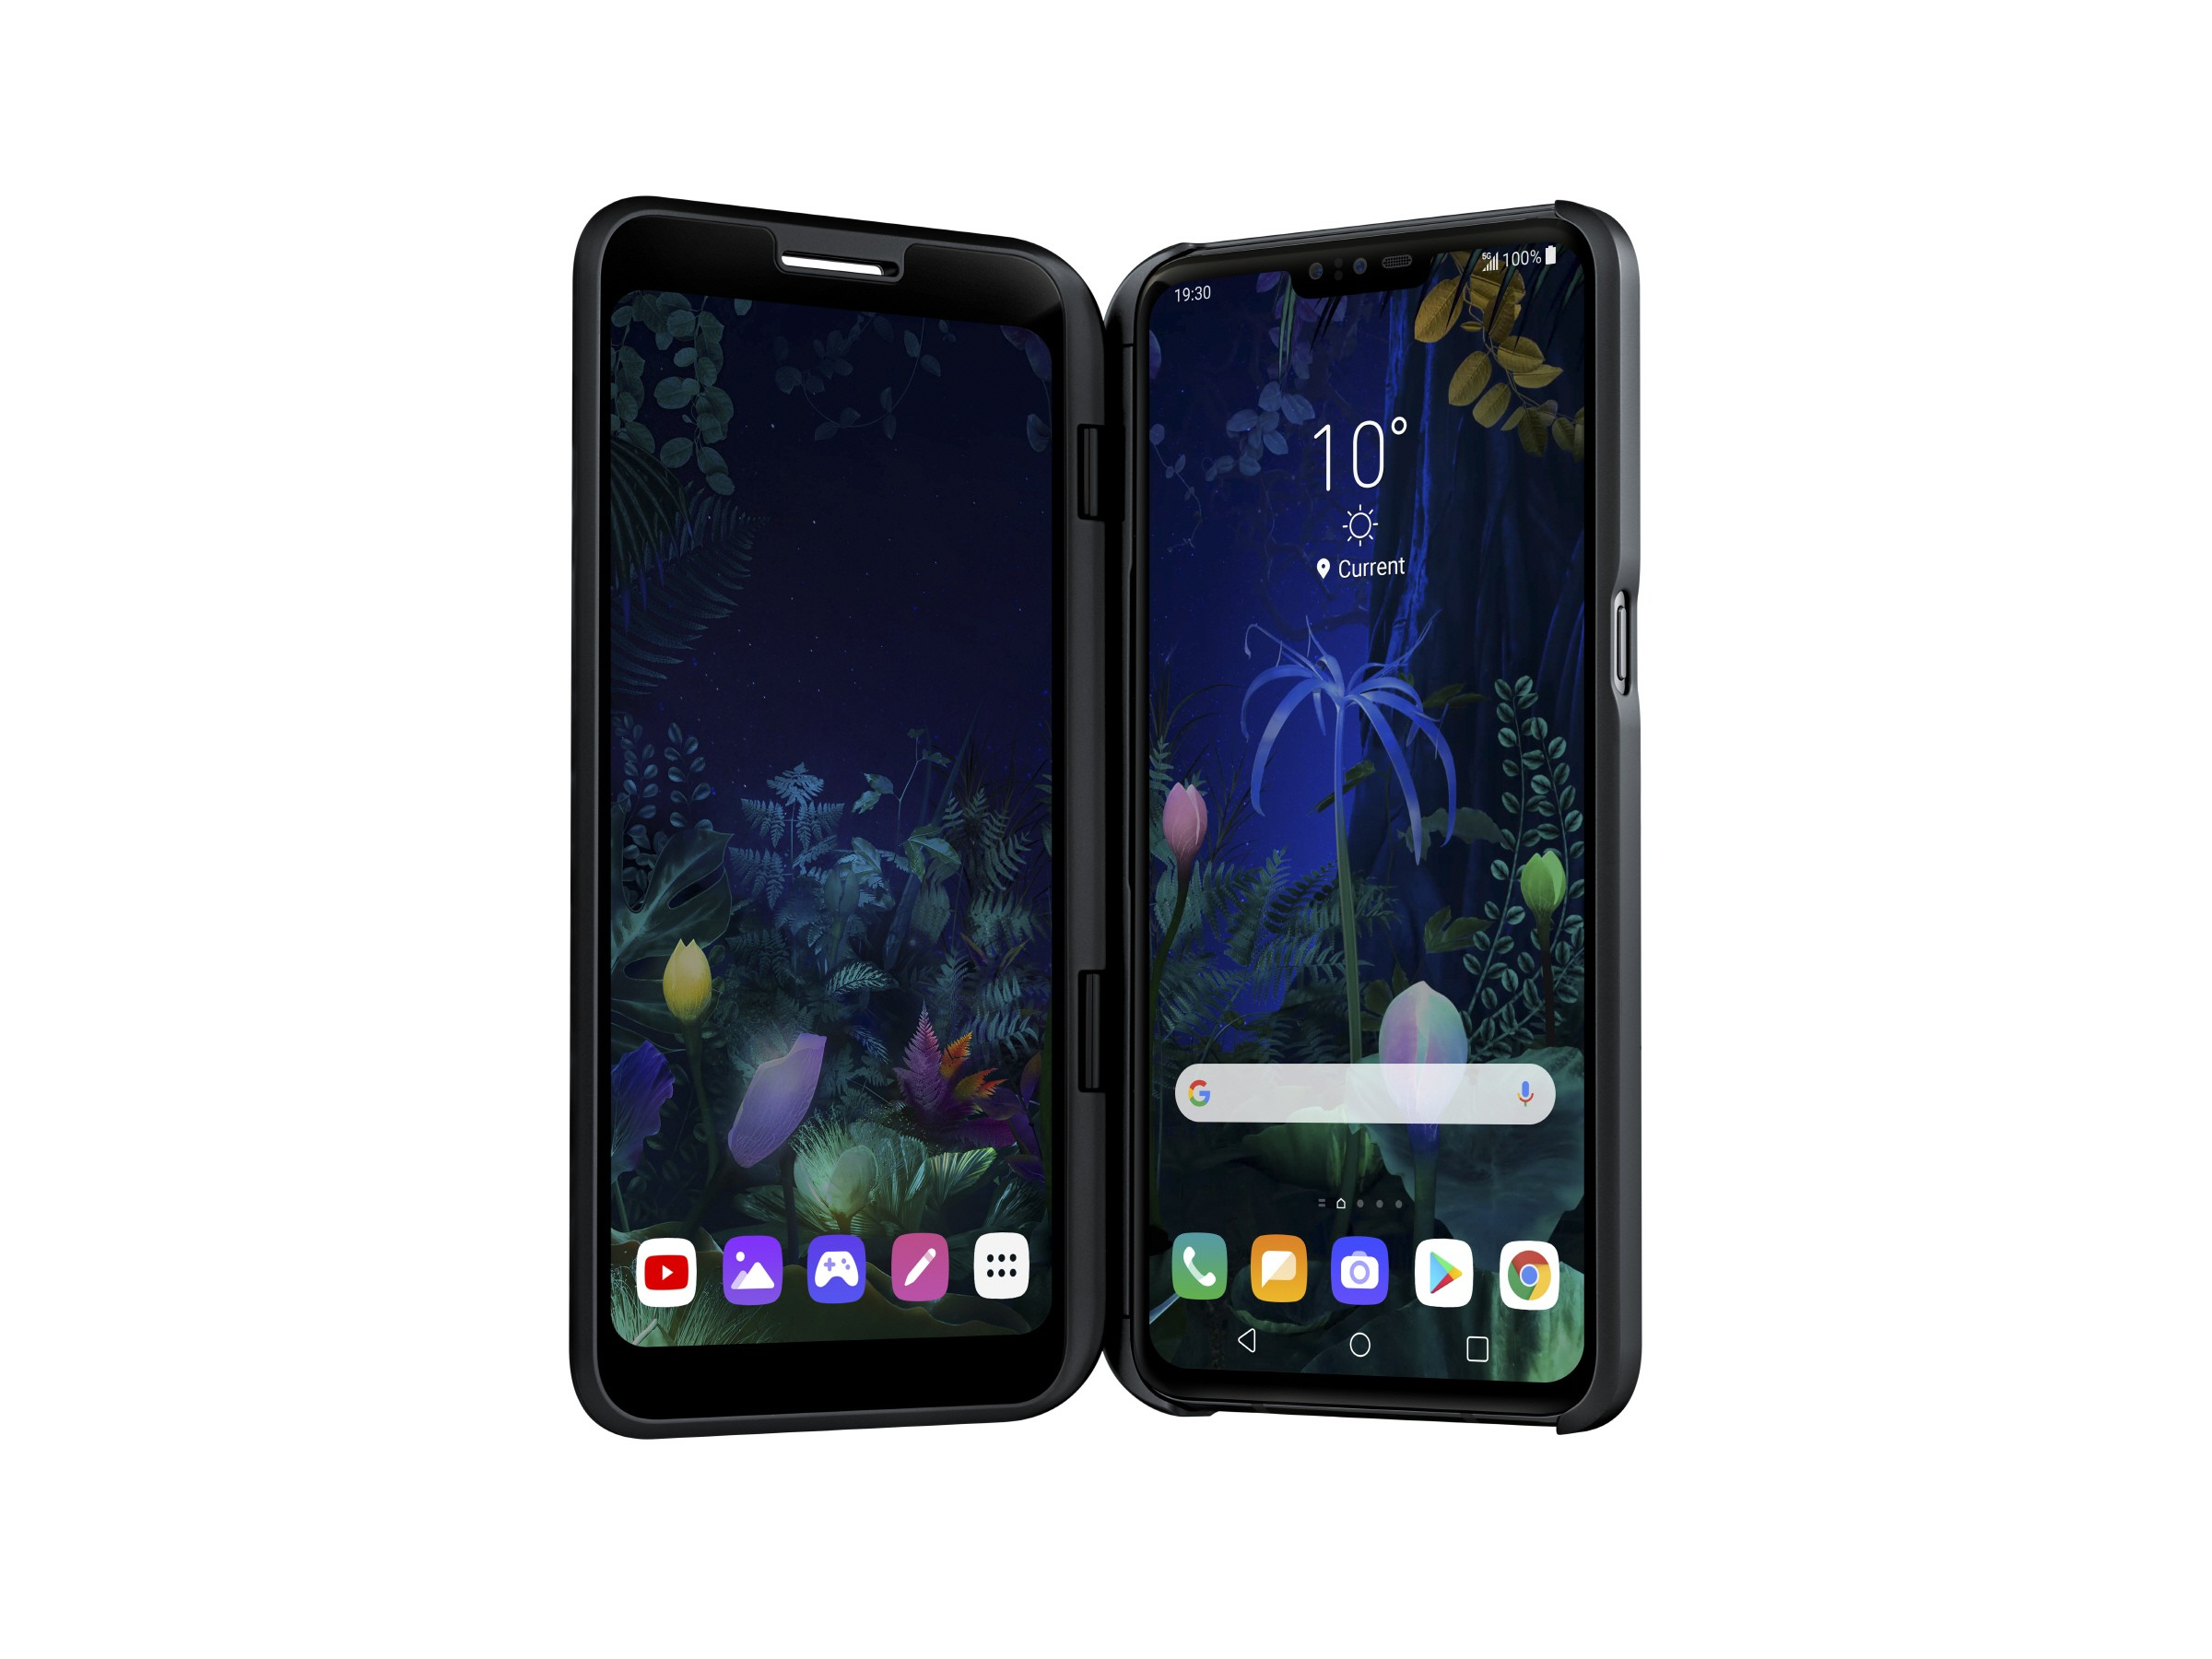 The front view of the LG V50 ThinQ 5G connected to the LG Dual Screen